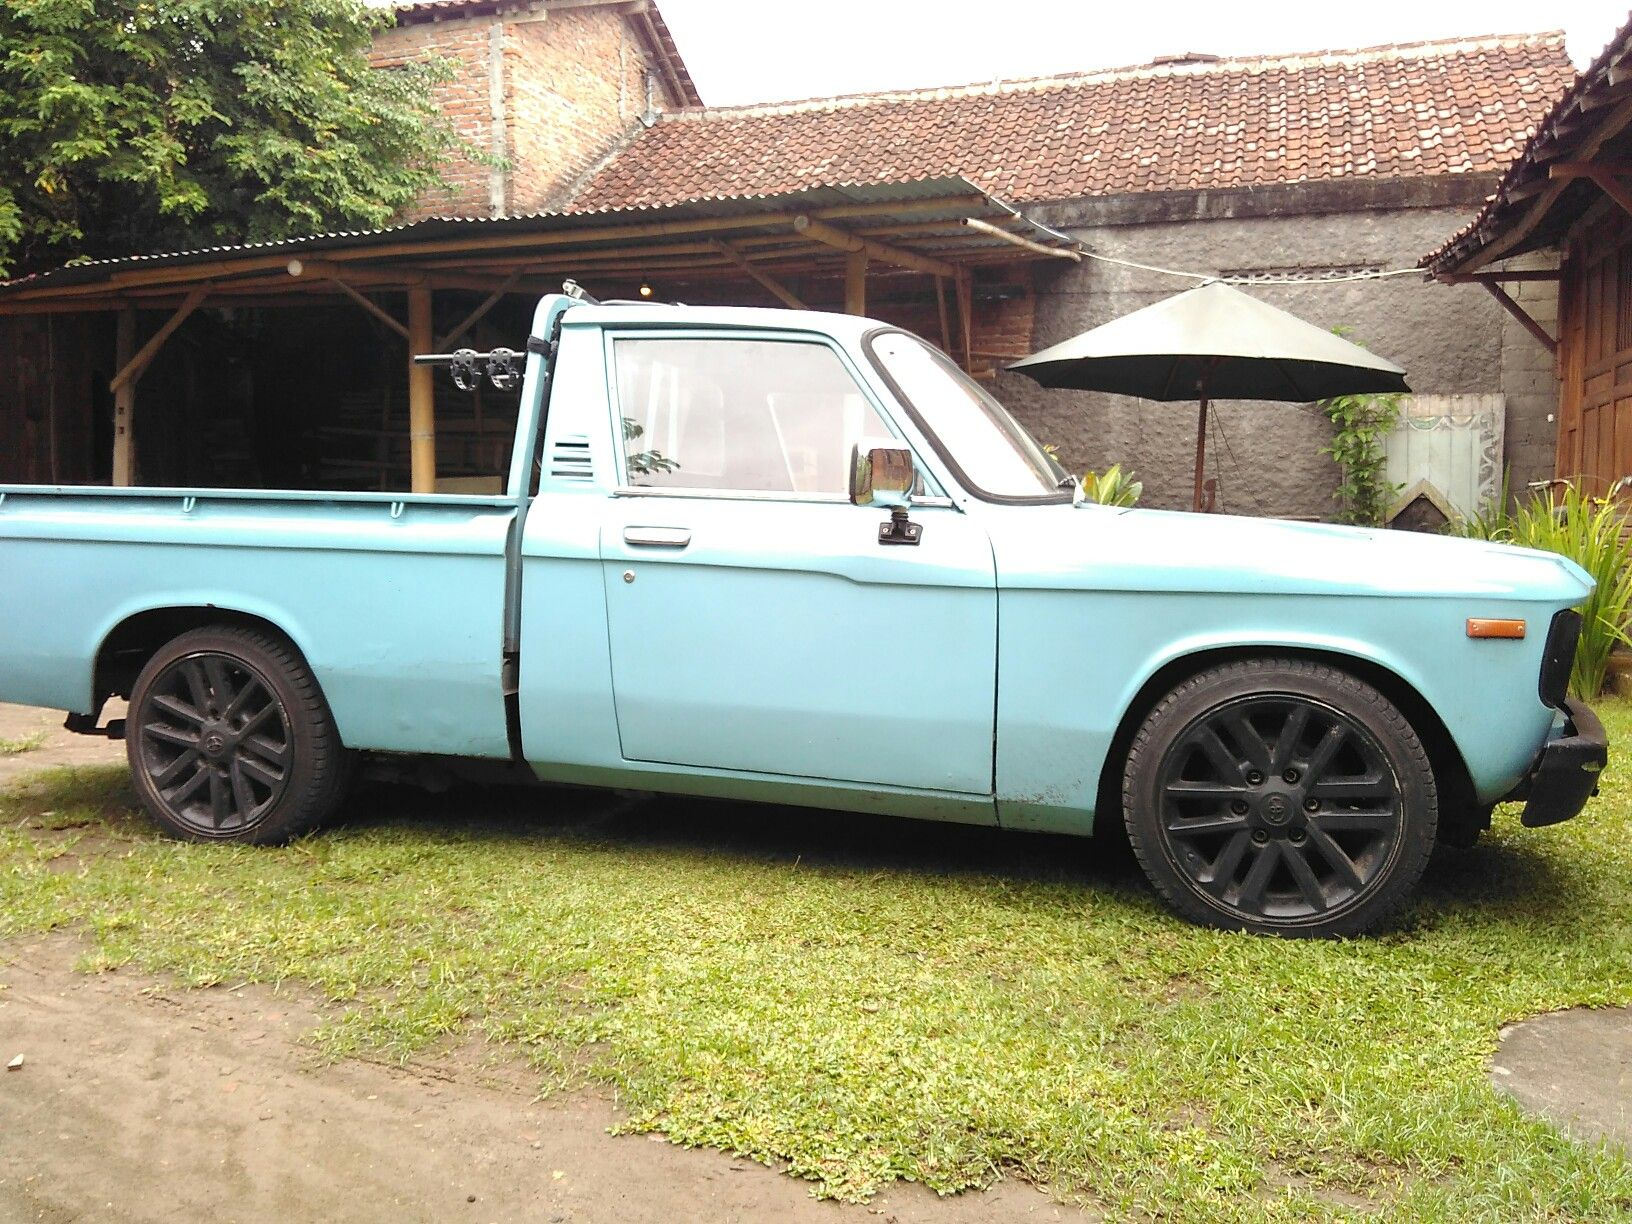 My Old 78 Chevy Luv After A Little Restoration Still Need Some More Chevyluv Brotherluv Auto Electrico Camionetas Autos